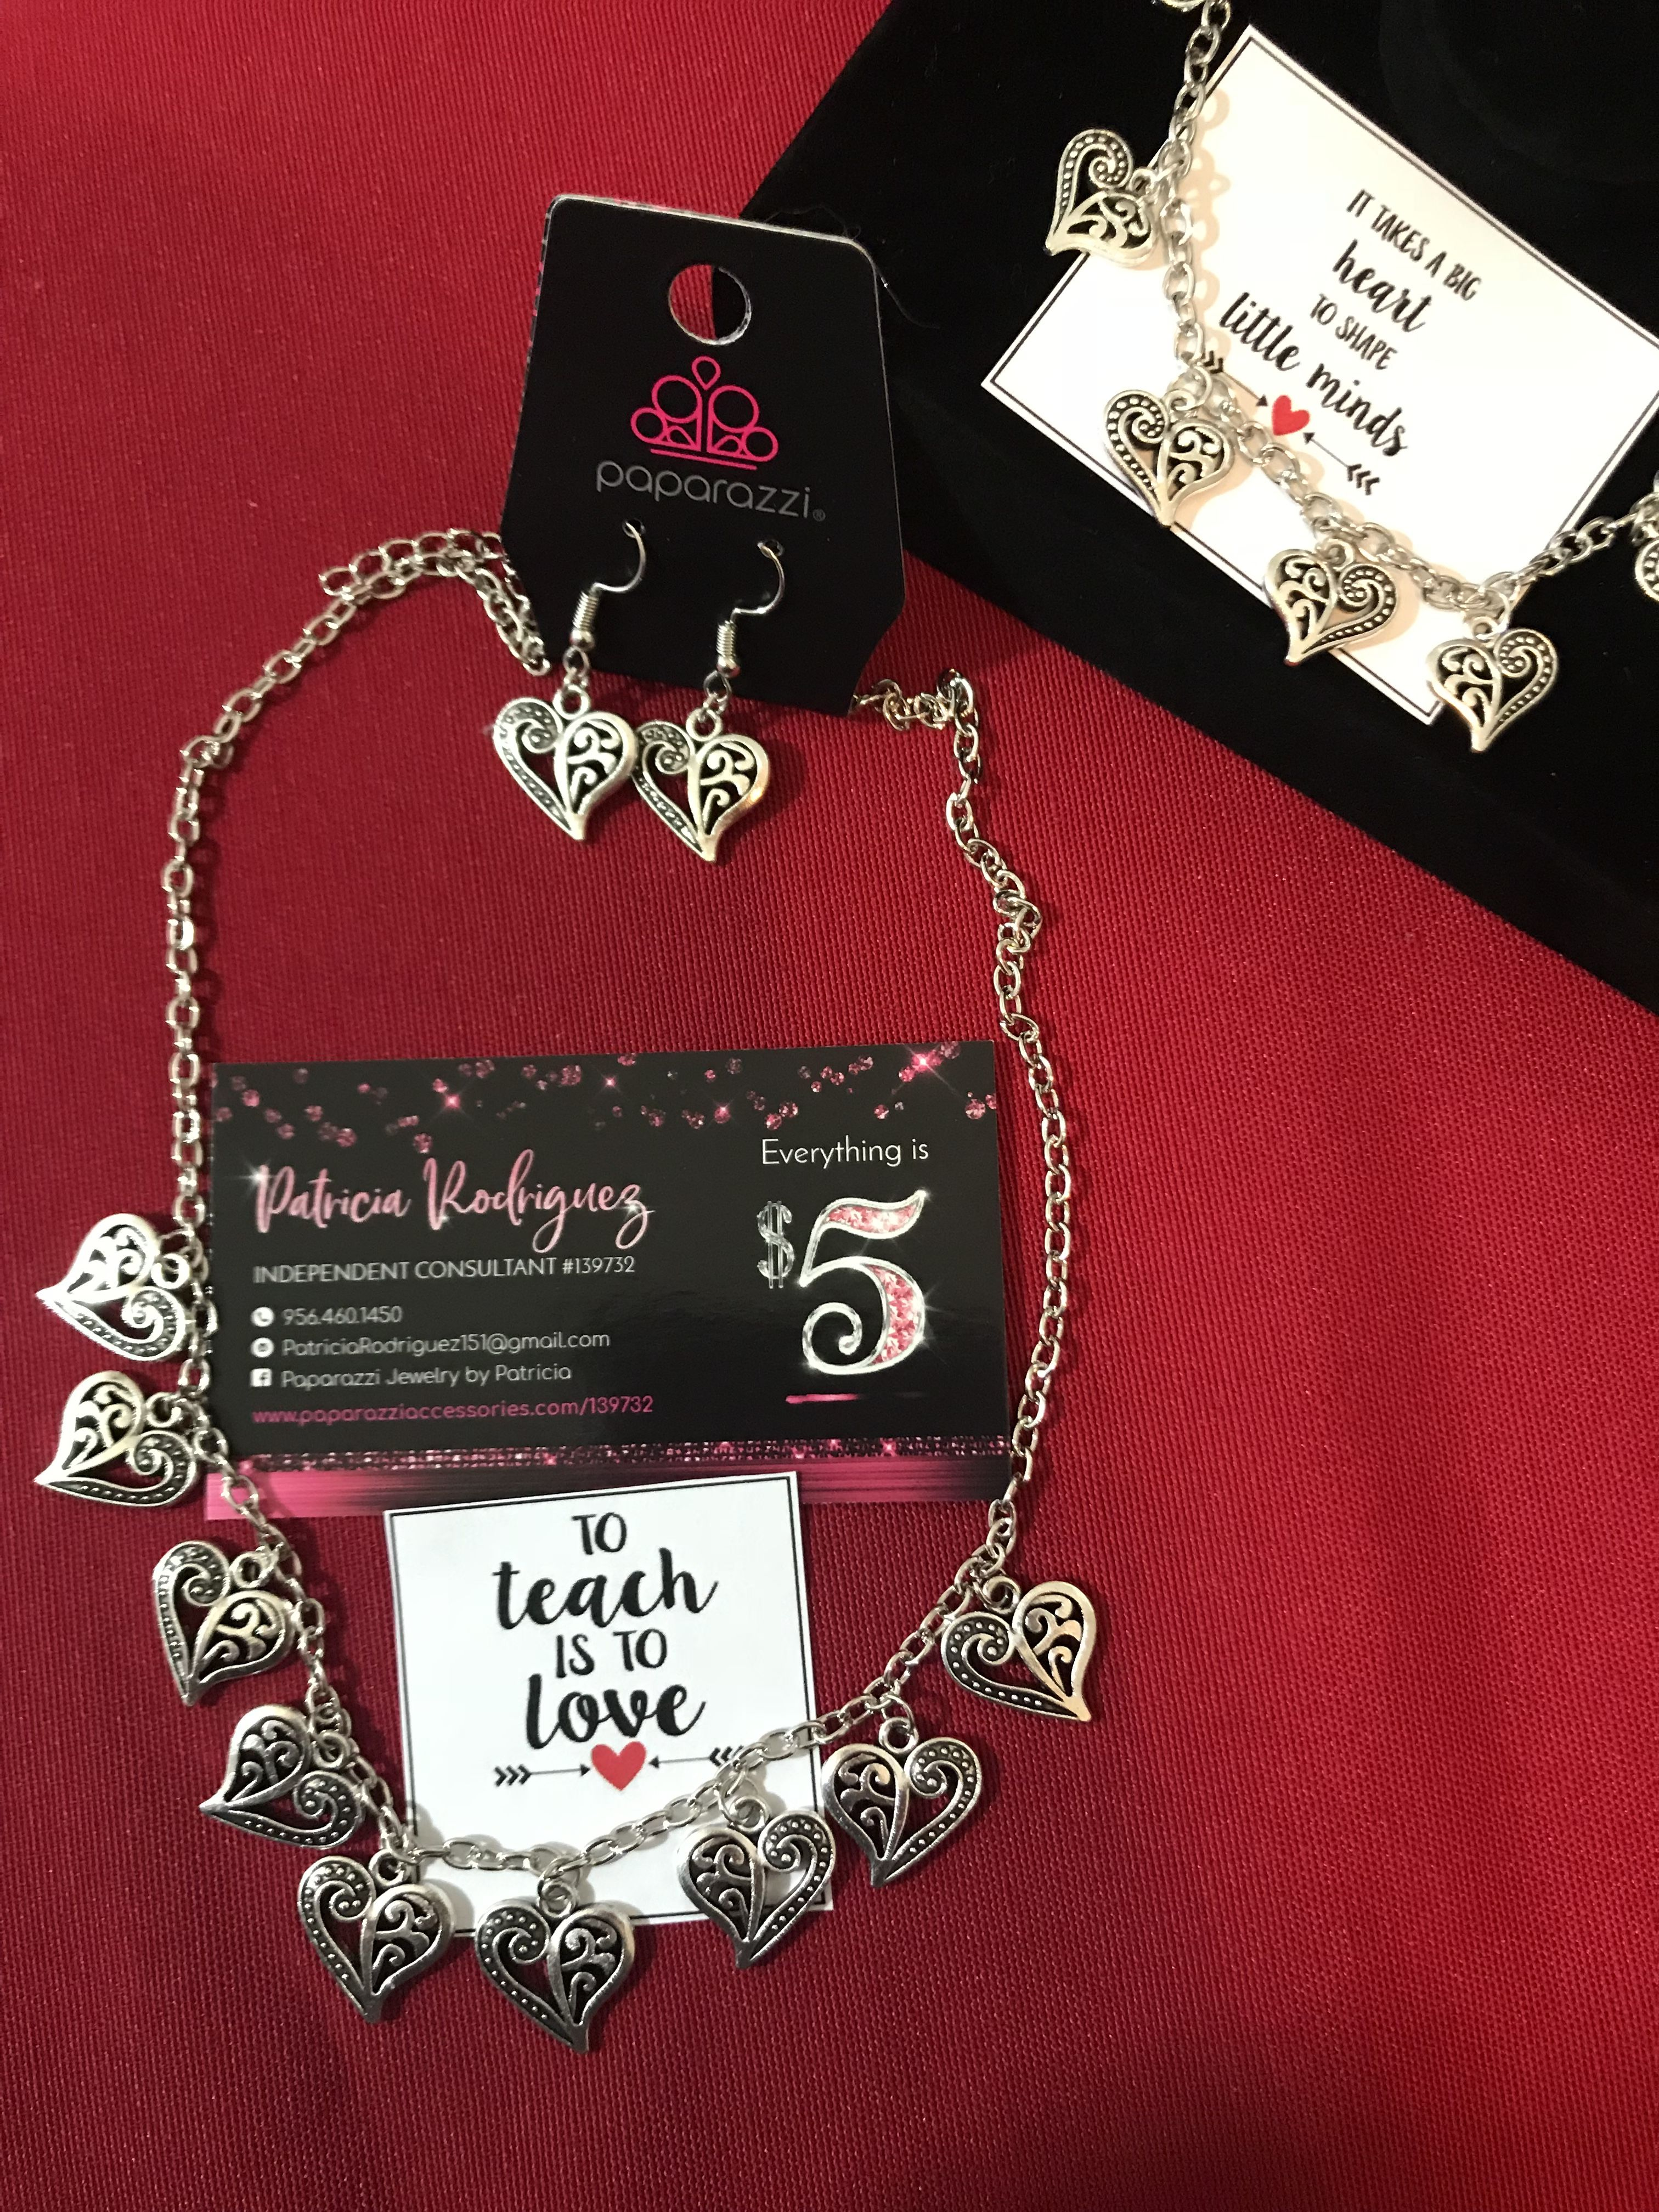 I created this idea for teacher gifts combining our love